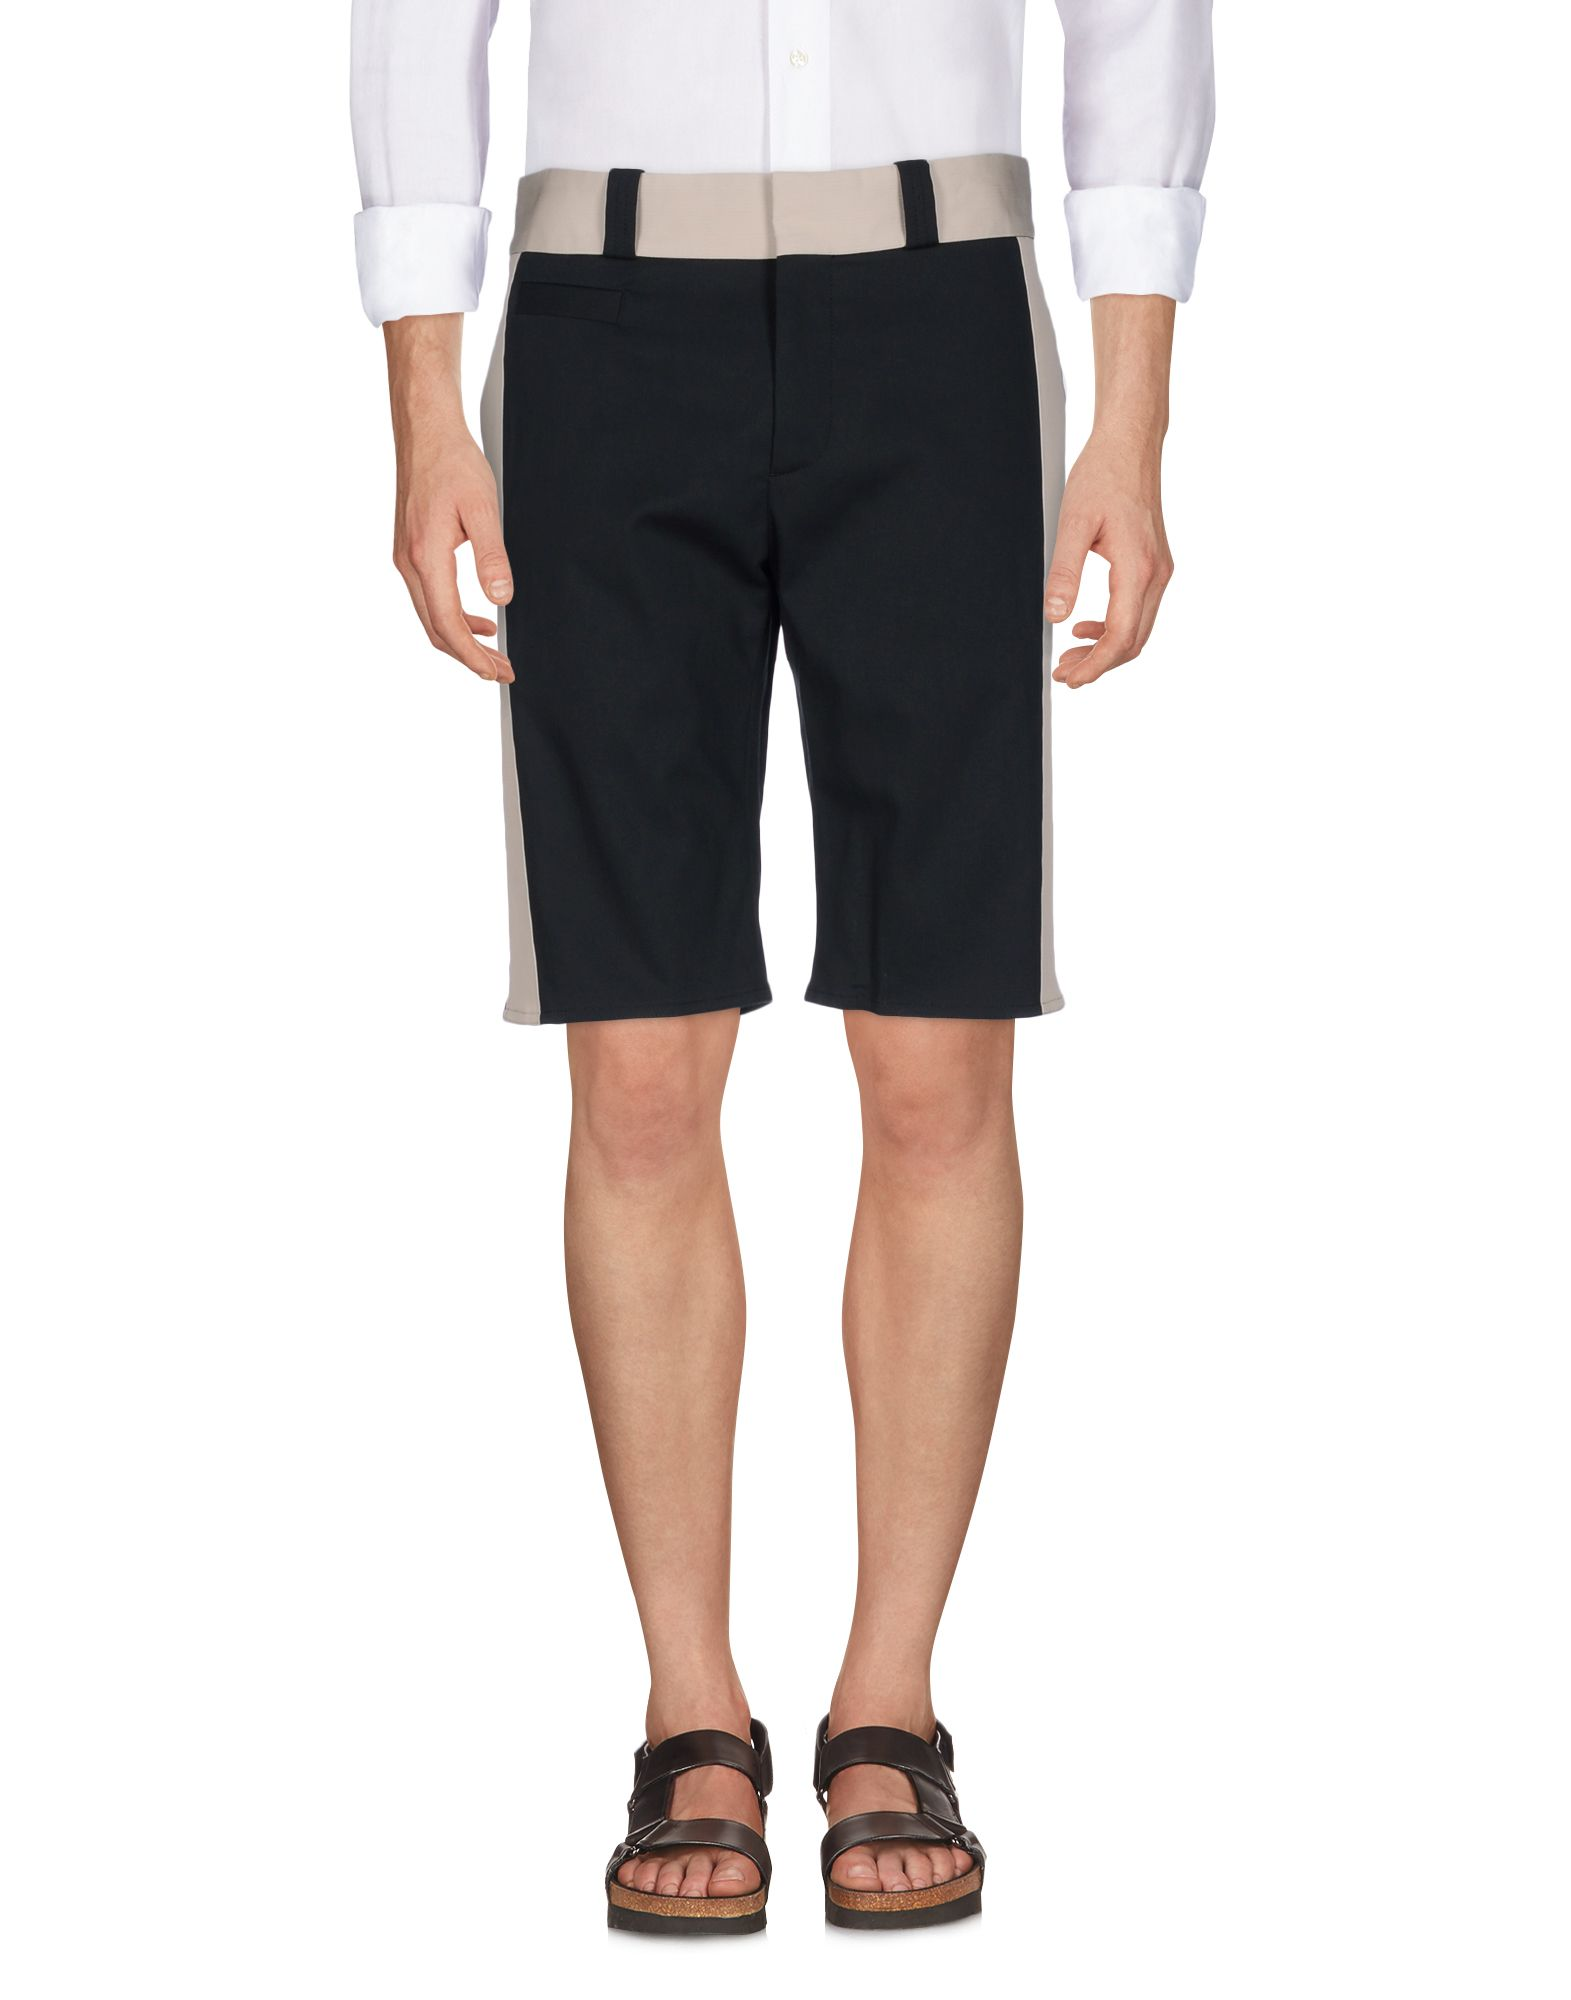 Shorts Marc Jacobs Uomo - Acquista online su